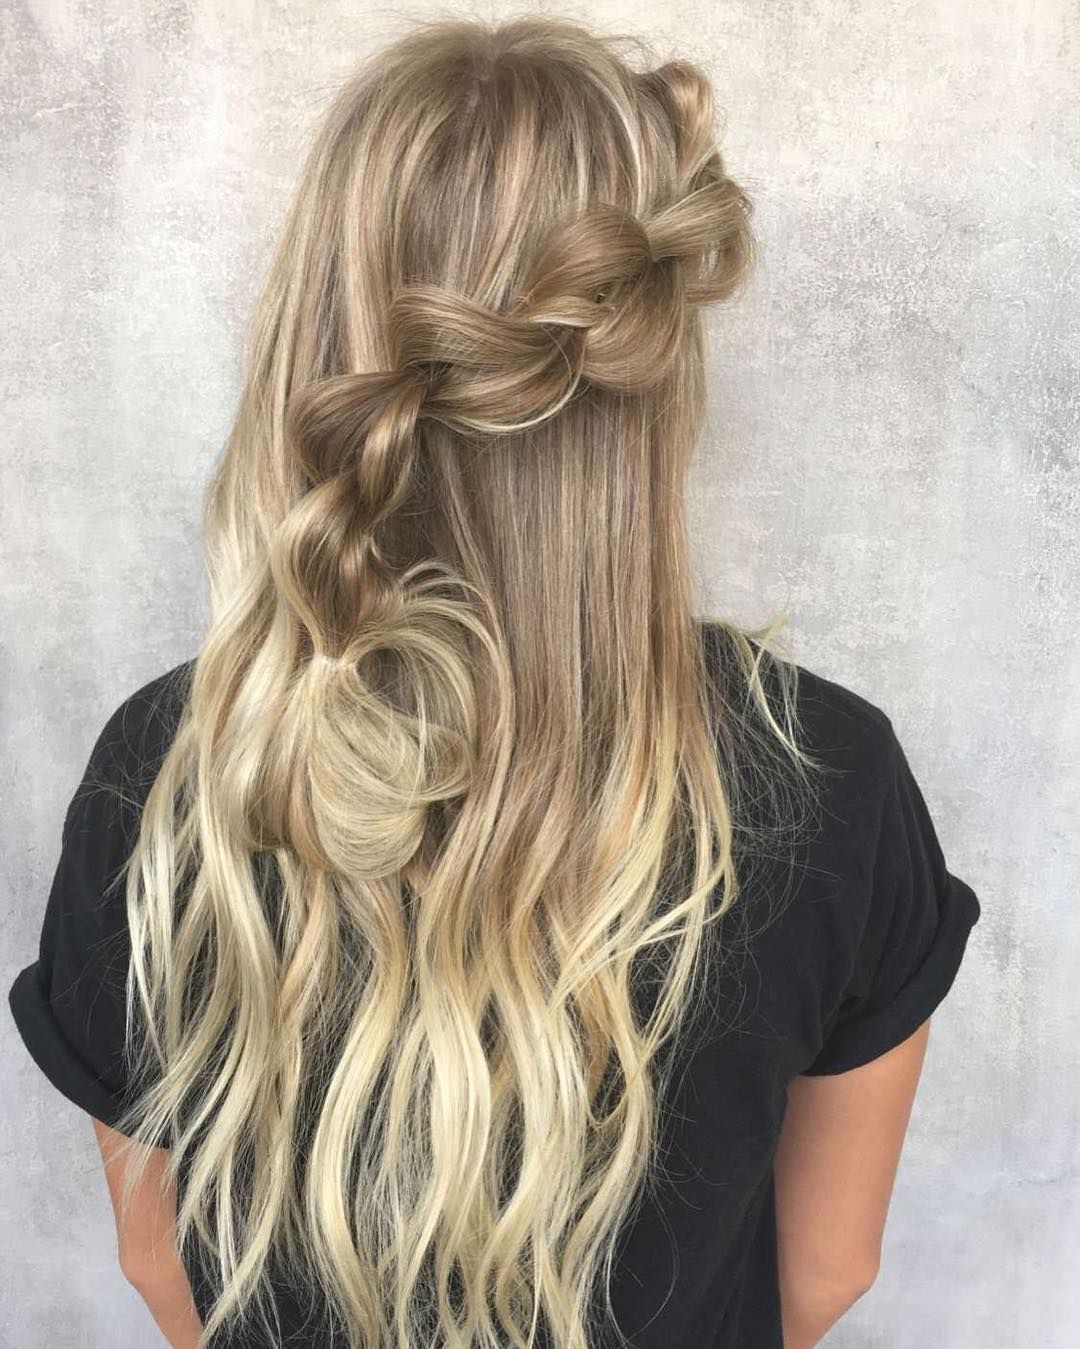 αυυυвreyтαтe нαιr pinterest hair style homecoming hair